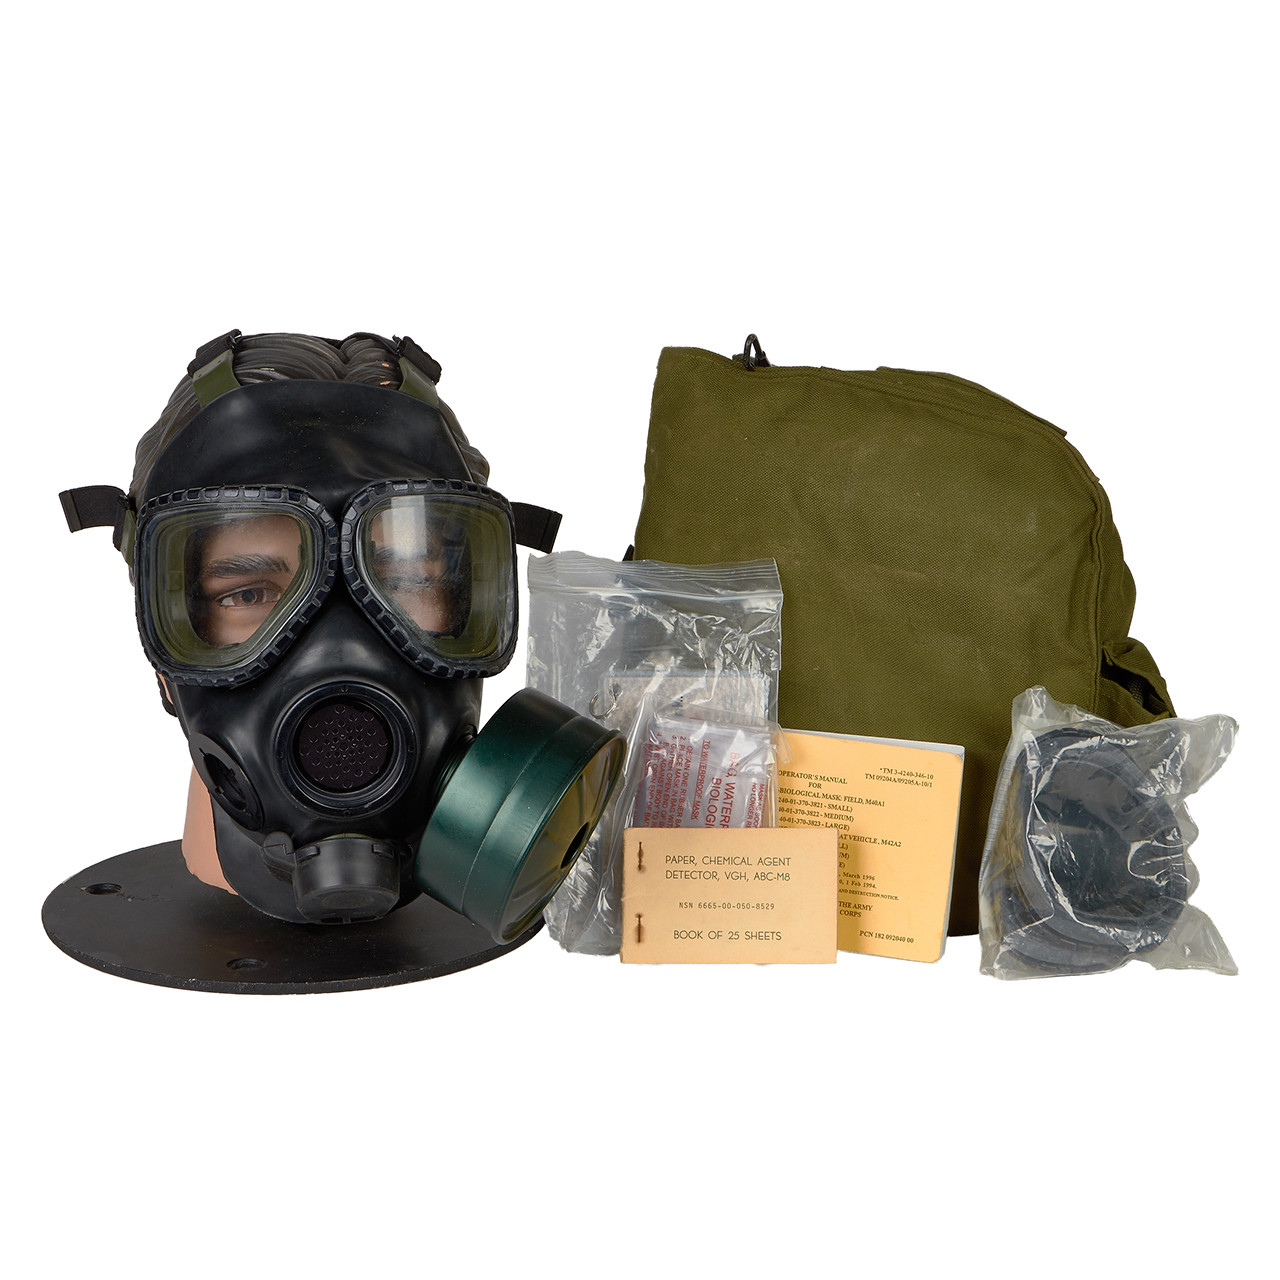 GM74 M40 SERIES G.I. ISSUE GAS MASK